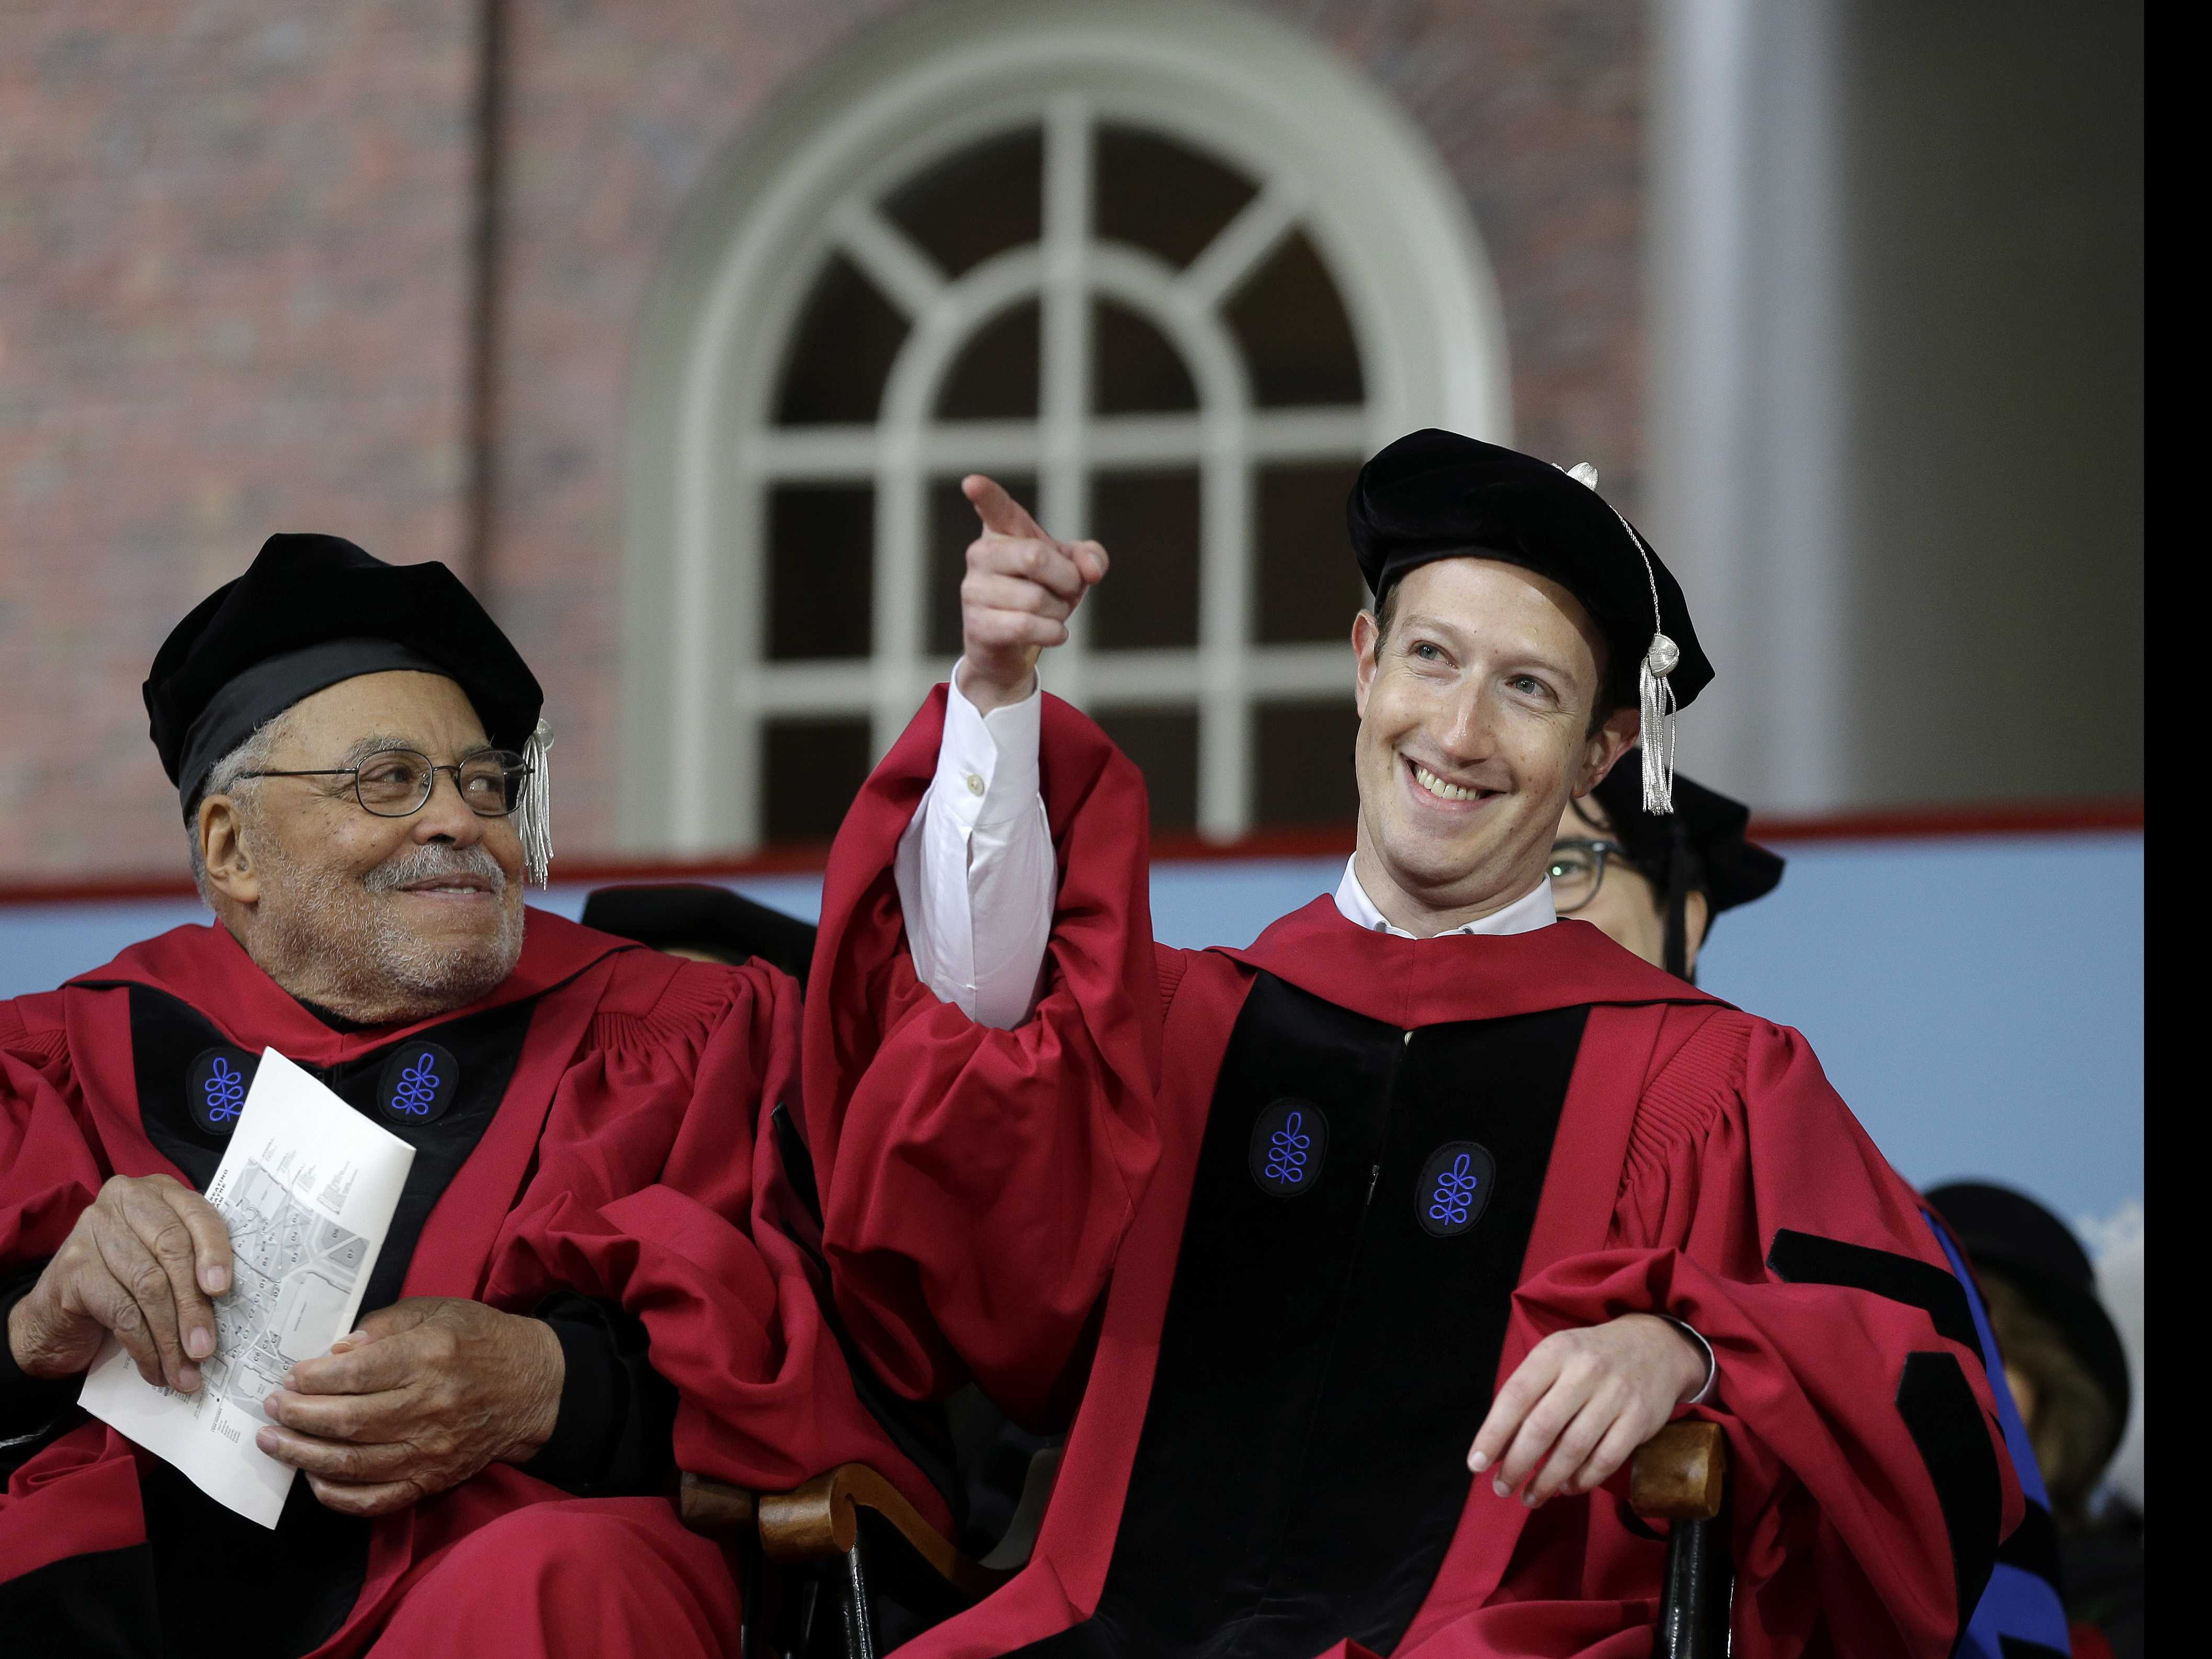 Dear, Harvard: 10 Memorable Quotes from Zuckerberg's Speech